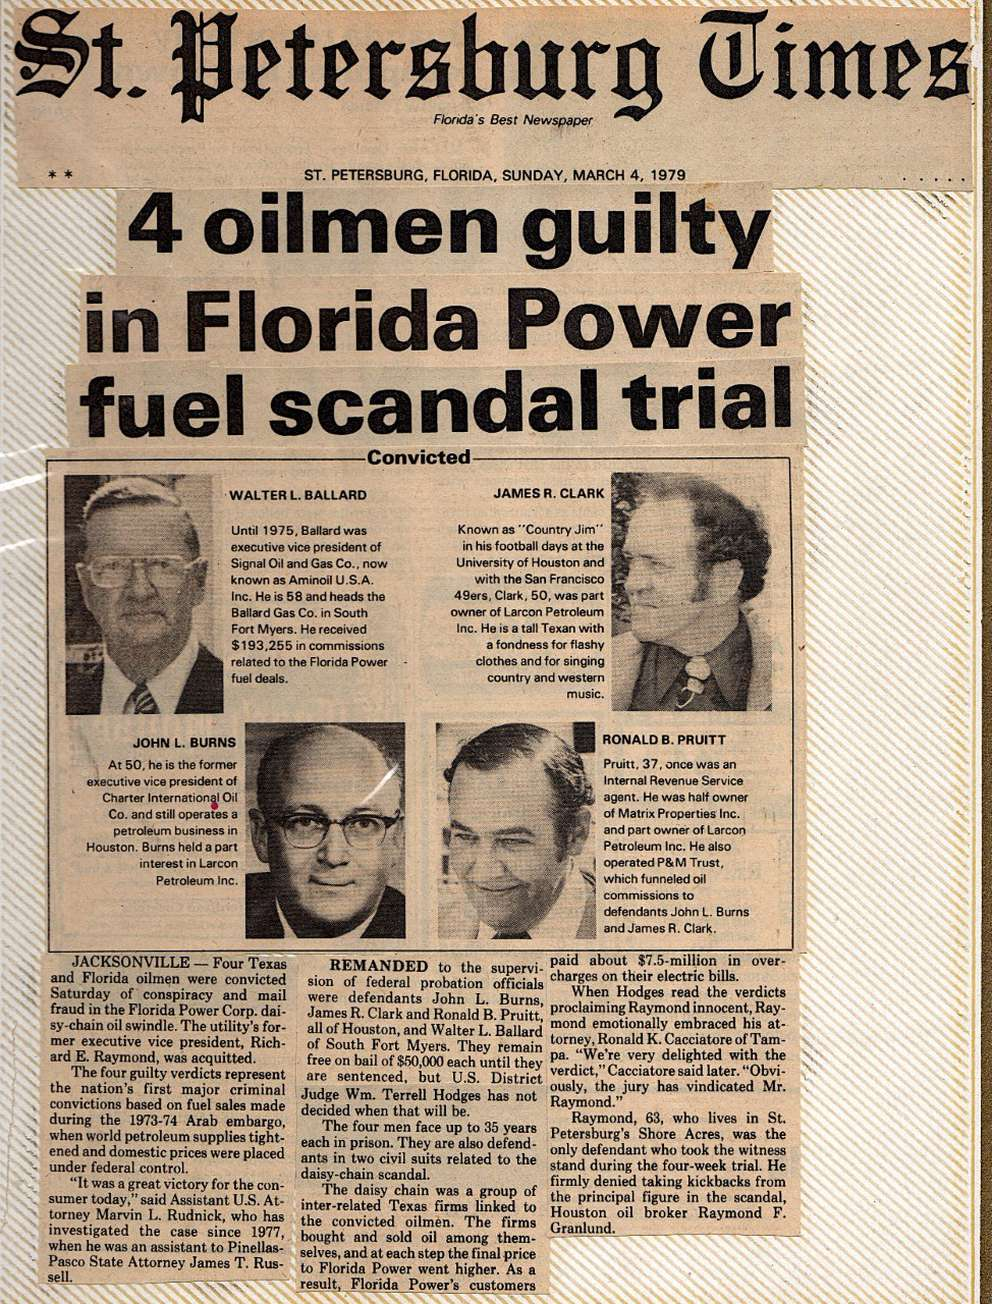 From Al Scudieri's newspaper clipping of the Florida Power case. The case's codename was